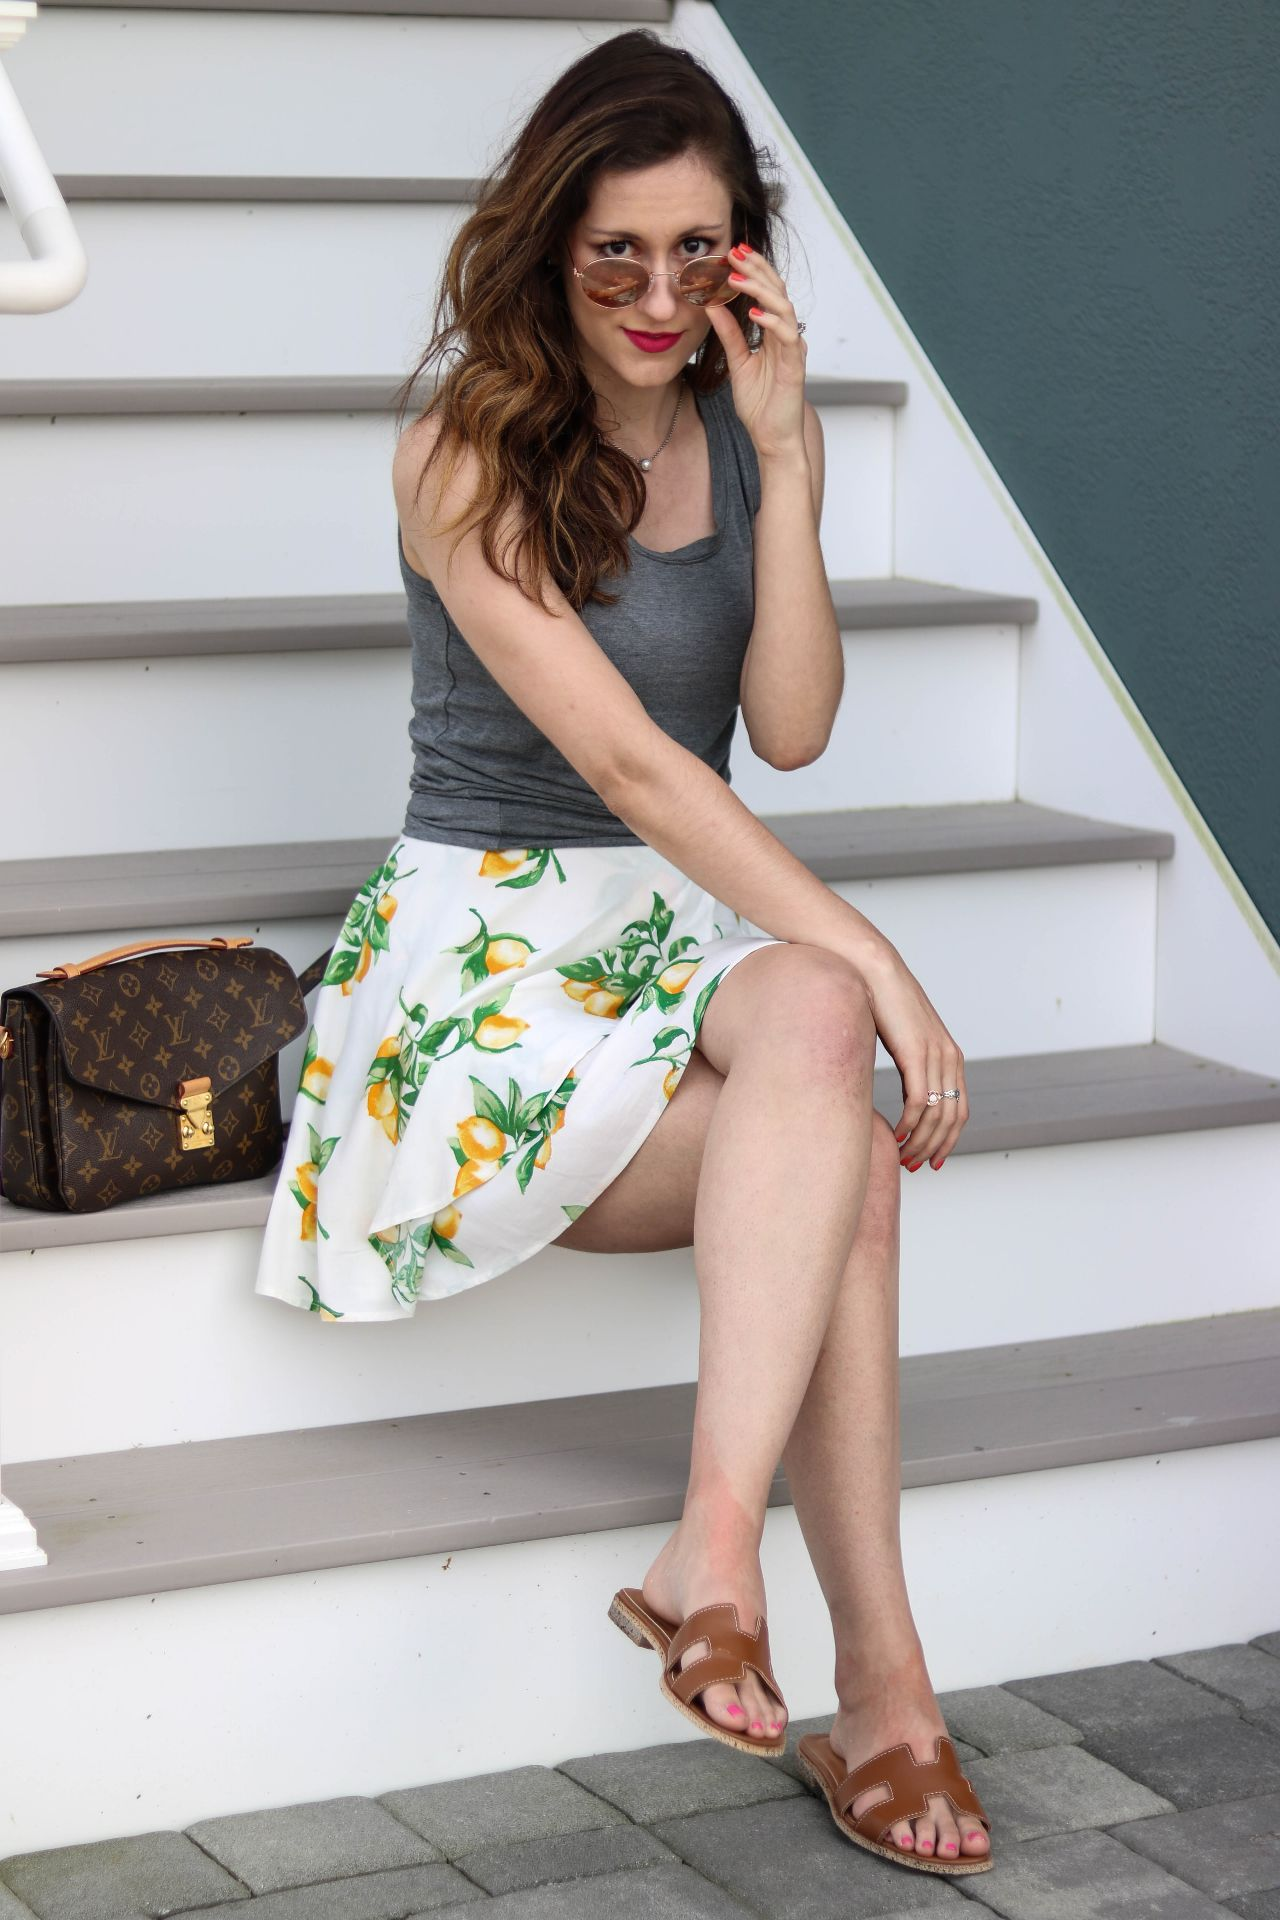 Feelin' fruity in this $20 lemon skirt, as seen on Philadelphia style blogger, Erica of Coming Up Roses. See how she styled it and shop the lemon skirt while shopping other fruit-themed pieces for summer!